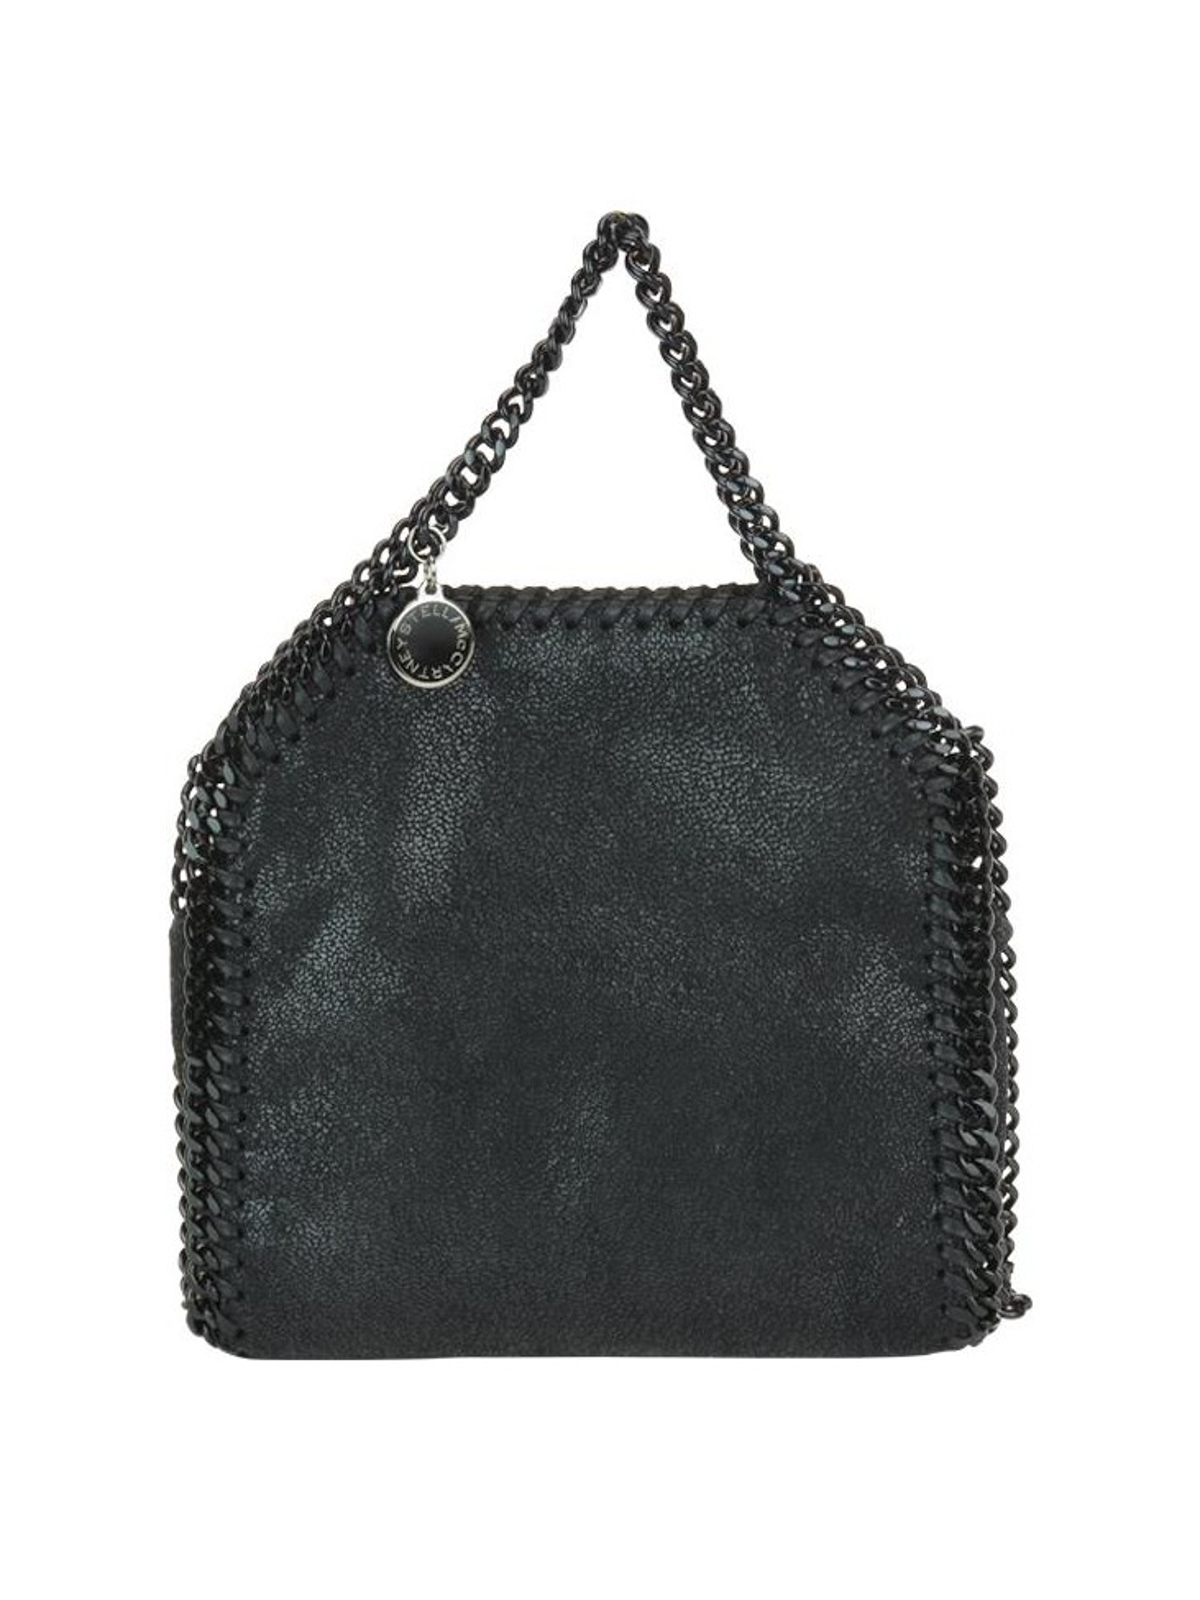 ba40706627e stella-mccartney-cross-body-bags-black -tiny-falabella-bag-00000141065f00s001.jpg